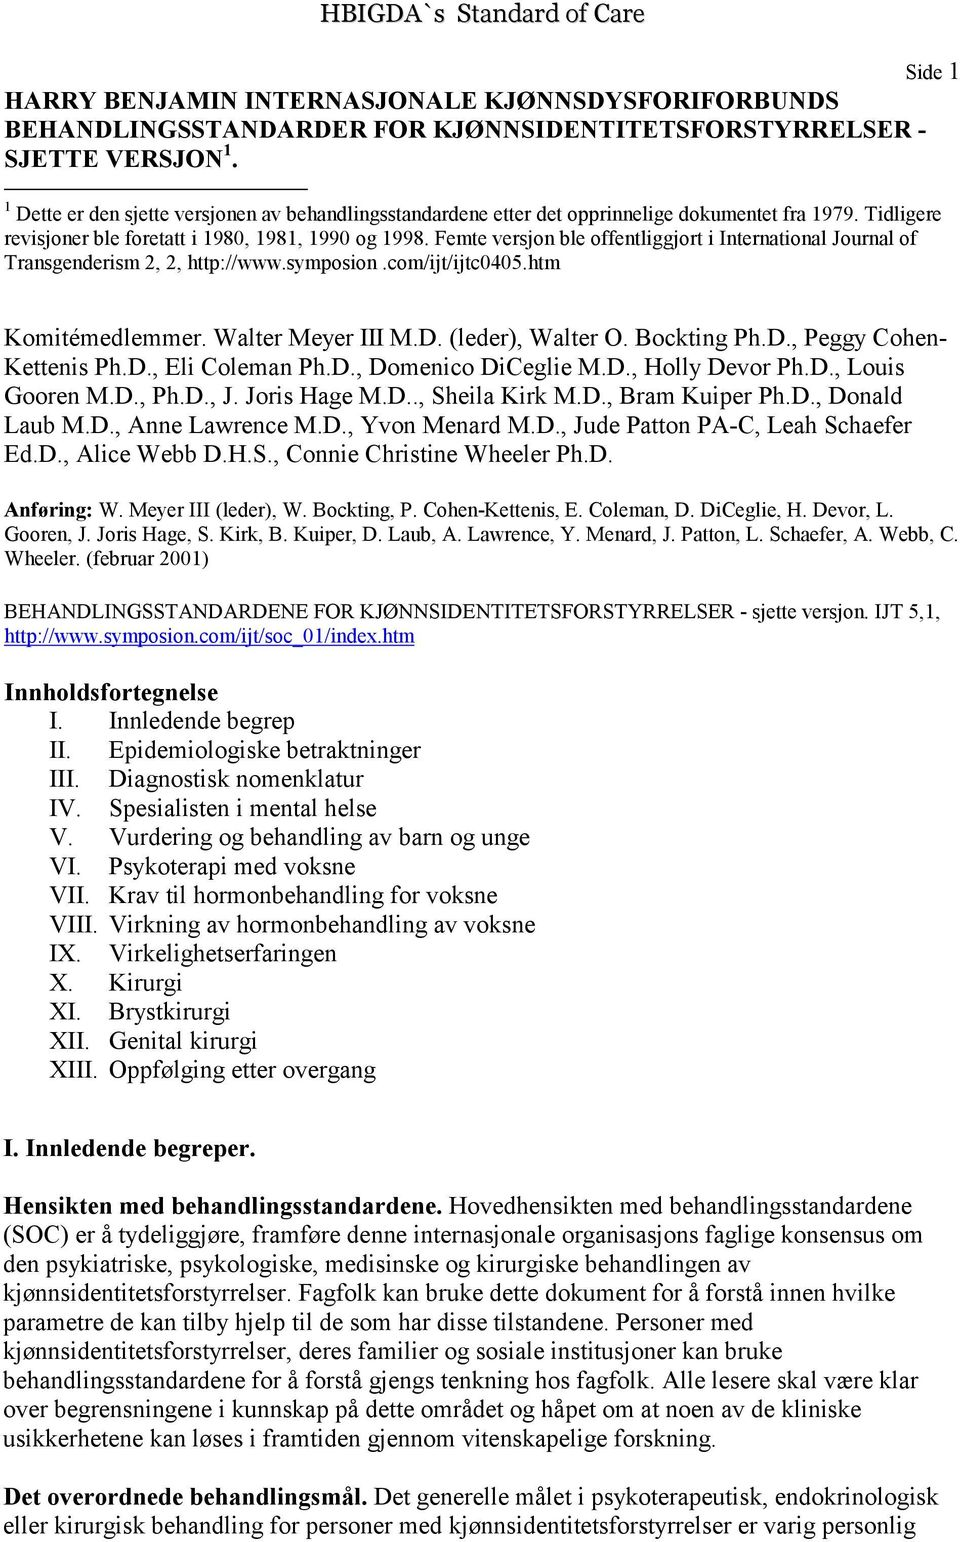 Femte versjon ble offentliggjort i International Journal of Transgenderism 2, 2, http://www.symposion.com/ijt/ijtc0405.htm Side 1 Komitémedlemmer. Walter Meyer III M.D. (leder), Walter O. Bockting Ph.